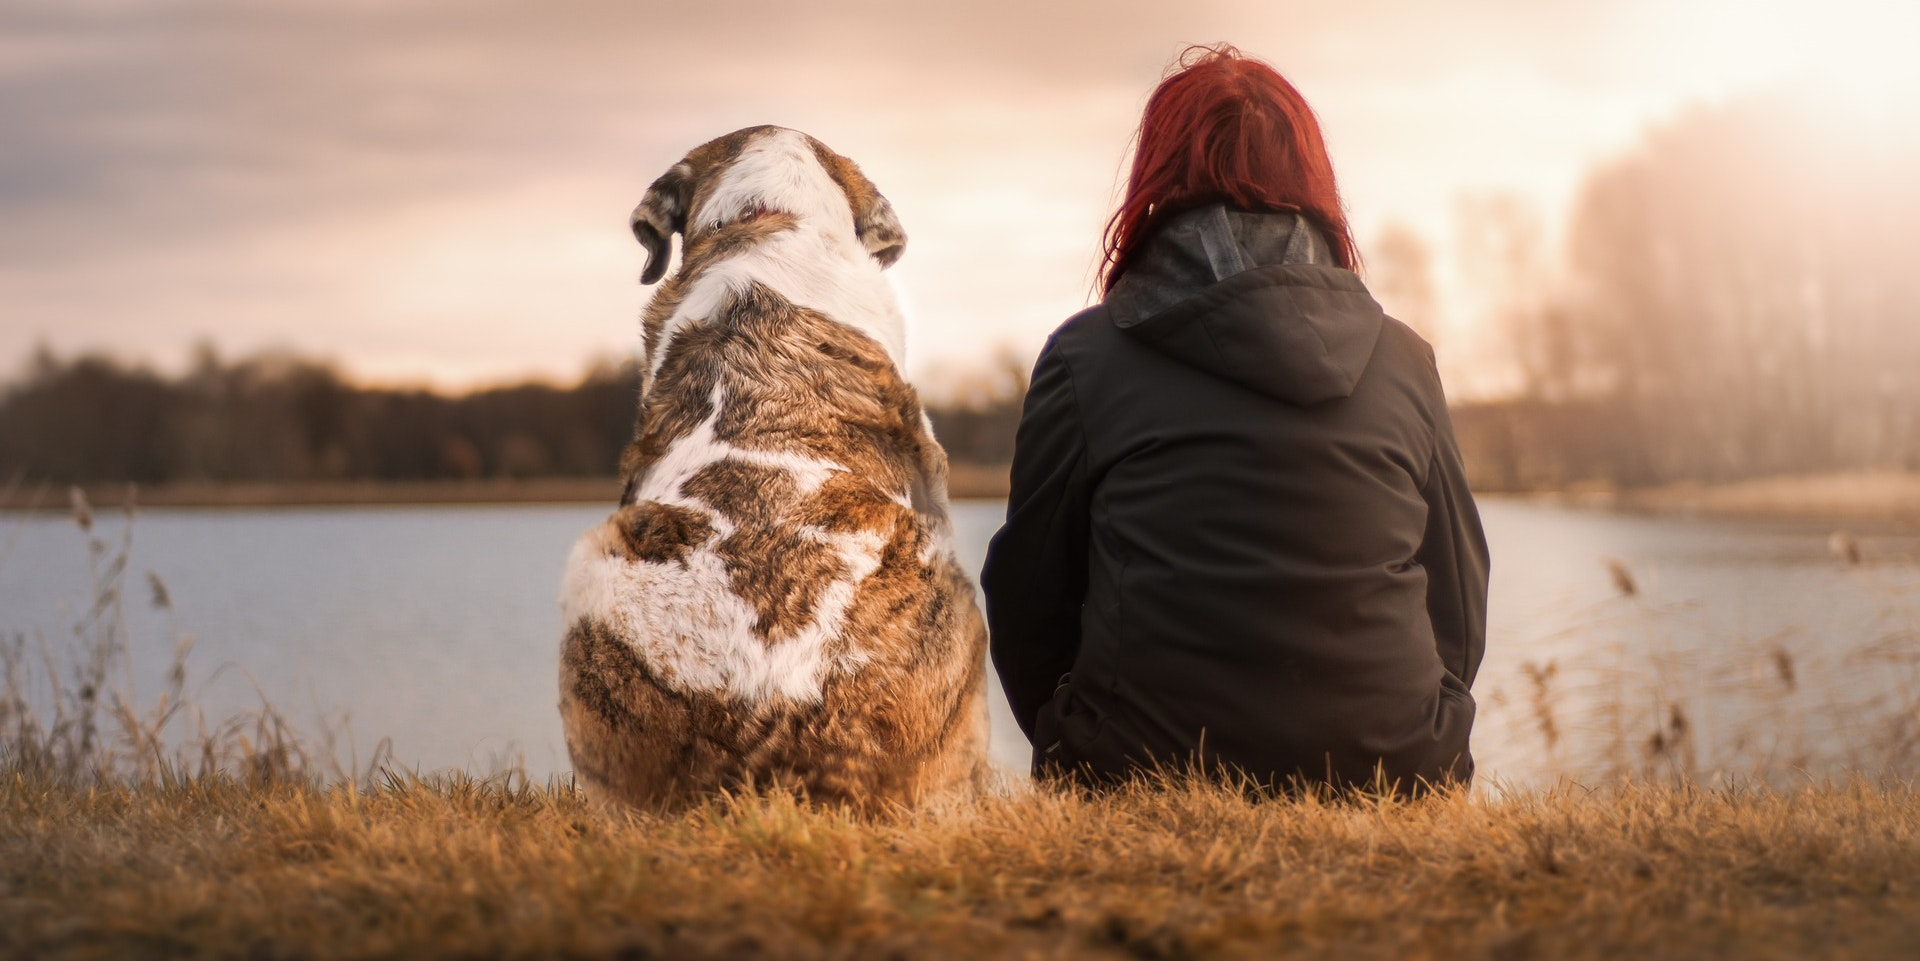 Science Explains How Dogs Skillfully Read Human Emotions and Why It Matters